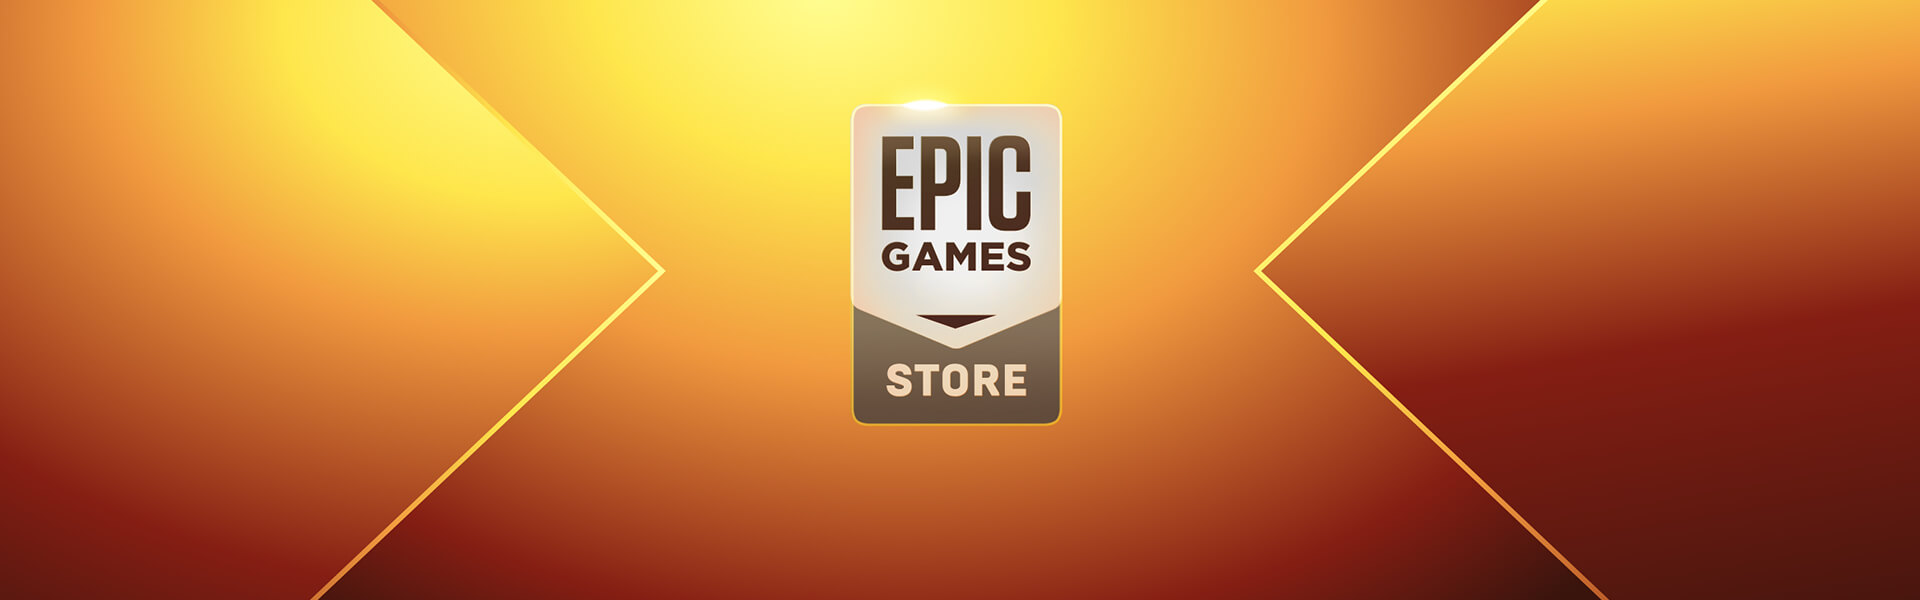 epic-games-store-2020